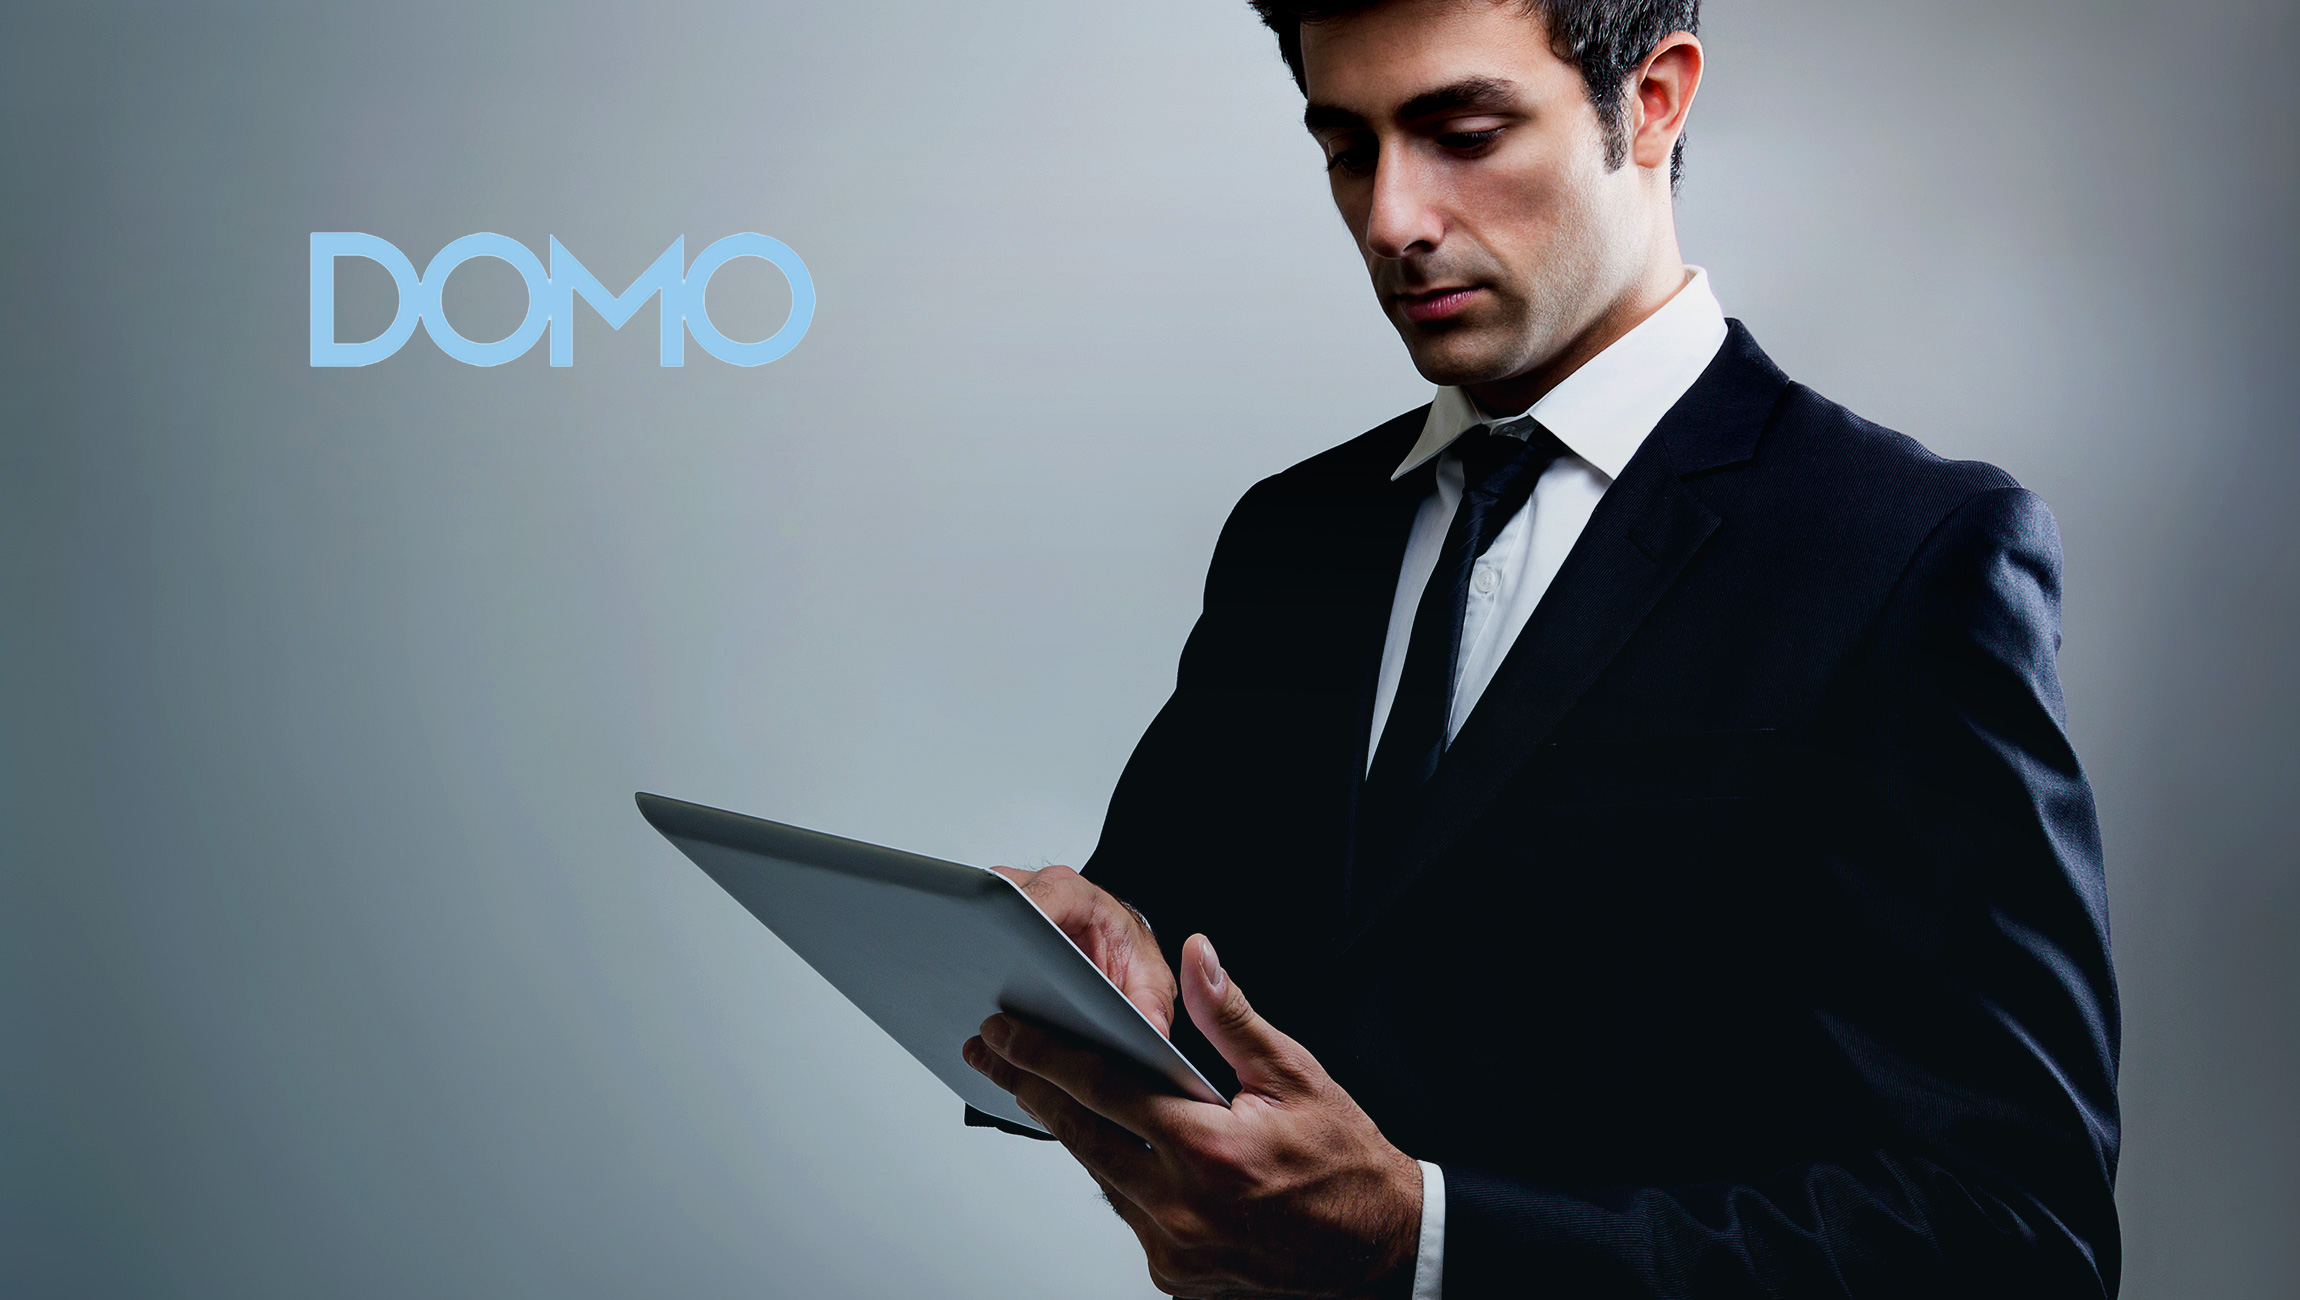 Domo Introduces the Domo Media Suite to Help Media Buyers and Publishers Drive More Performance from Digital Ad Campaigns